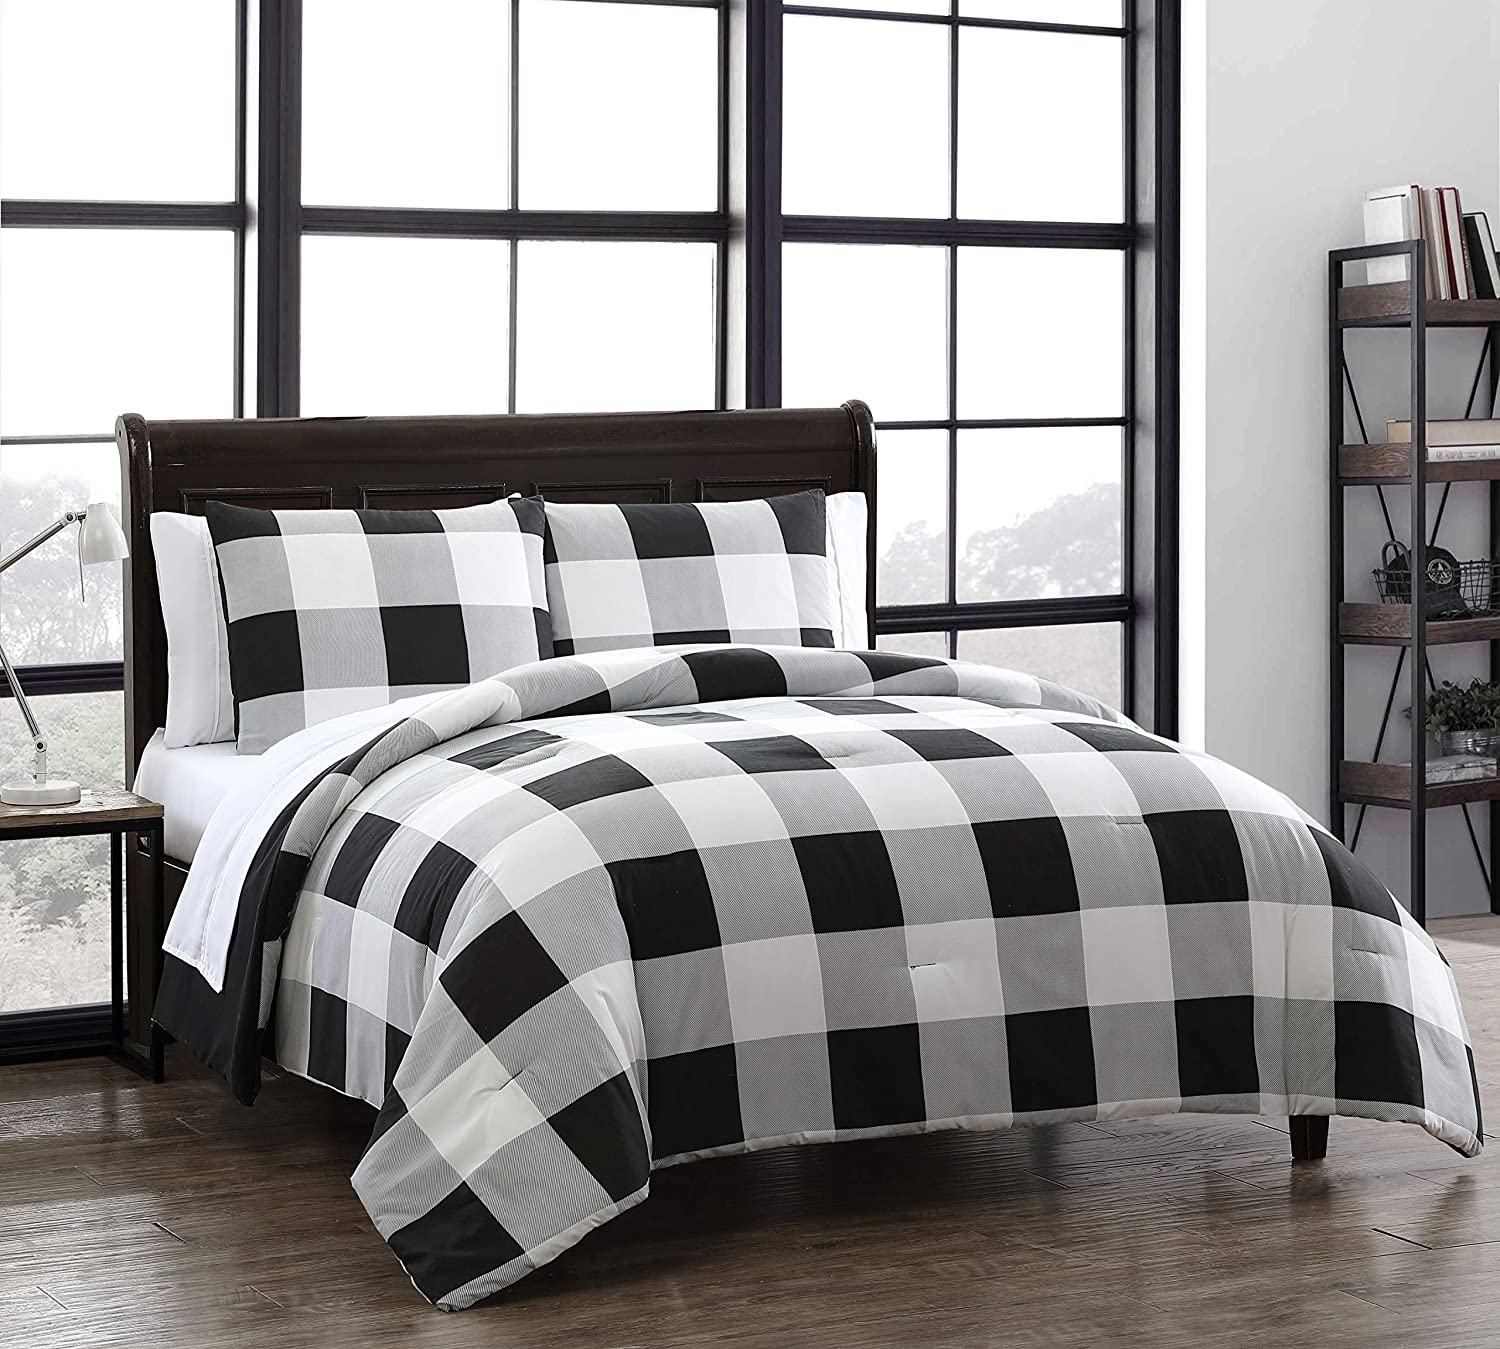 Amazon Com Buffalo Plaid 7pc Black And White Bed In A Bag Home Kitchen